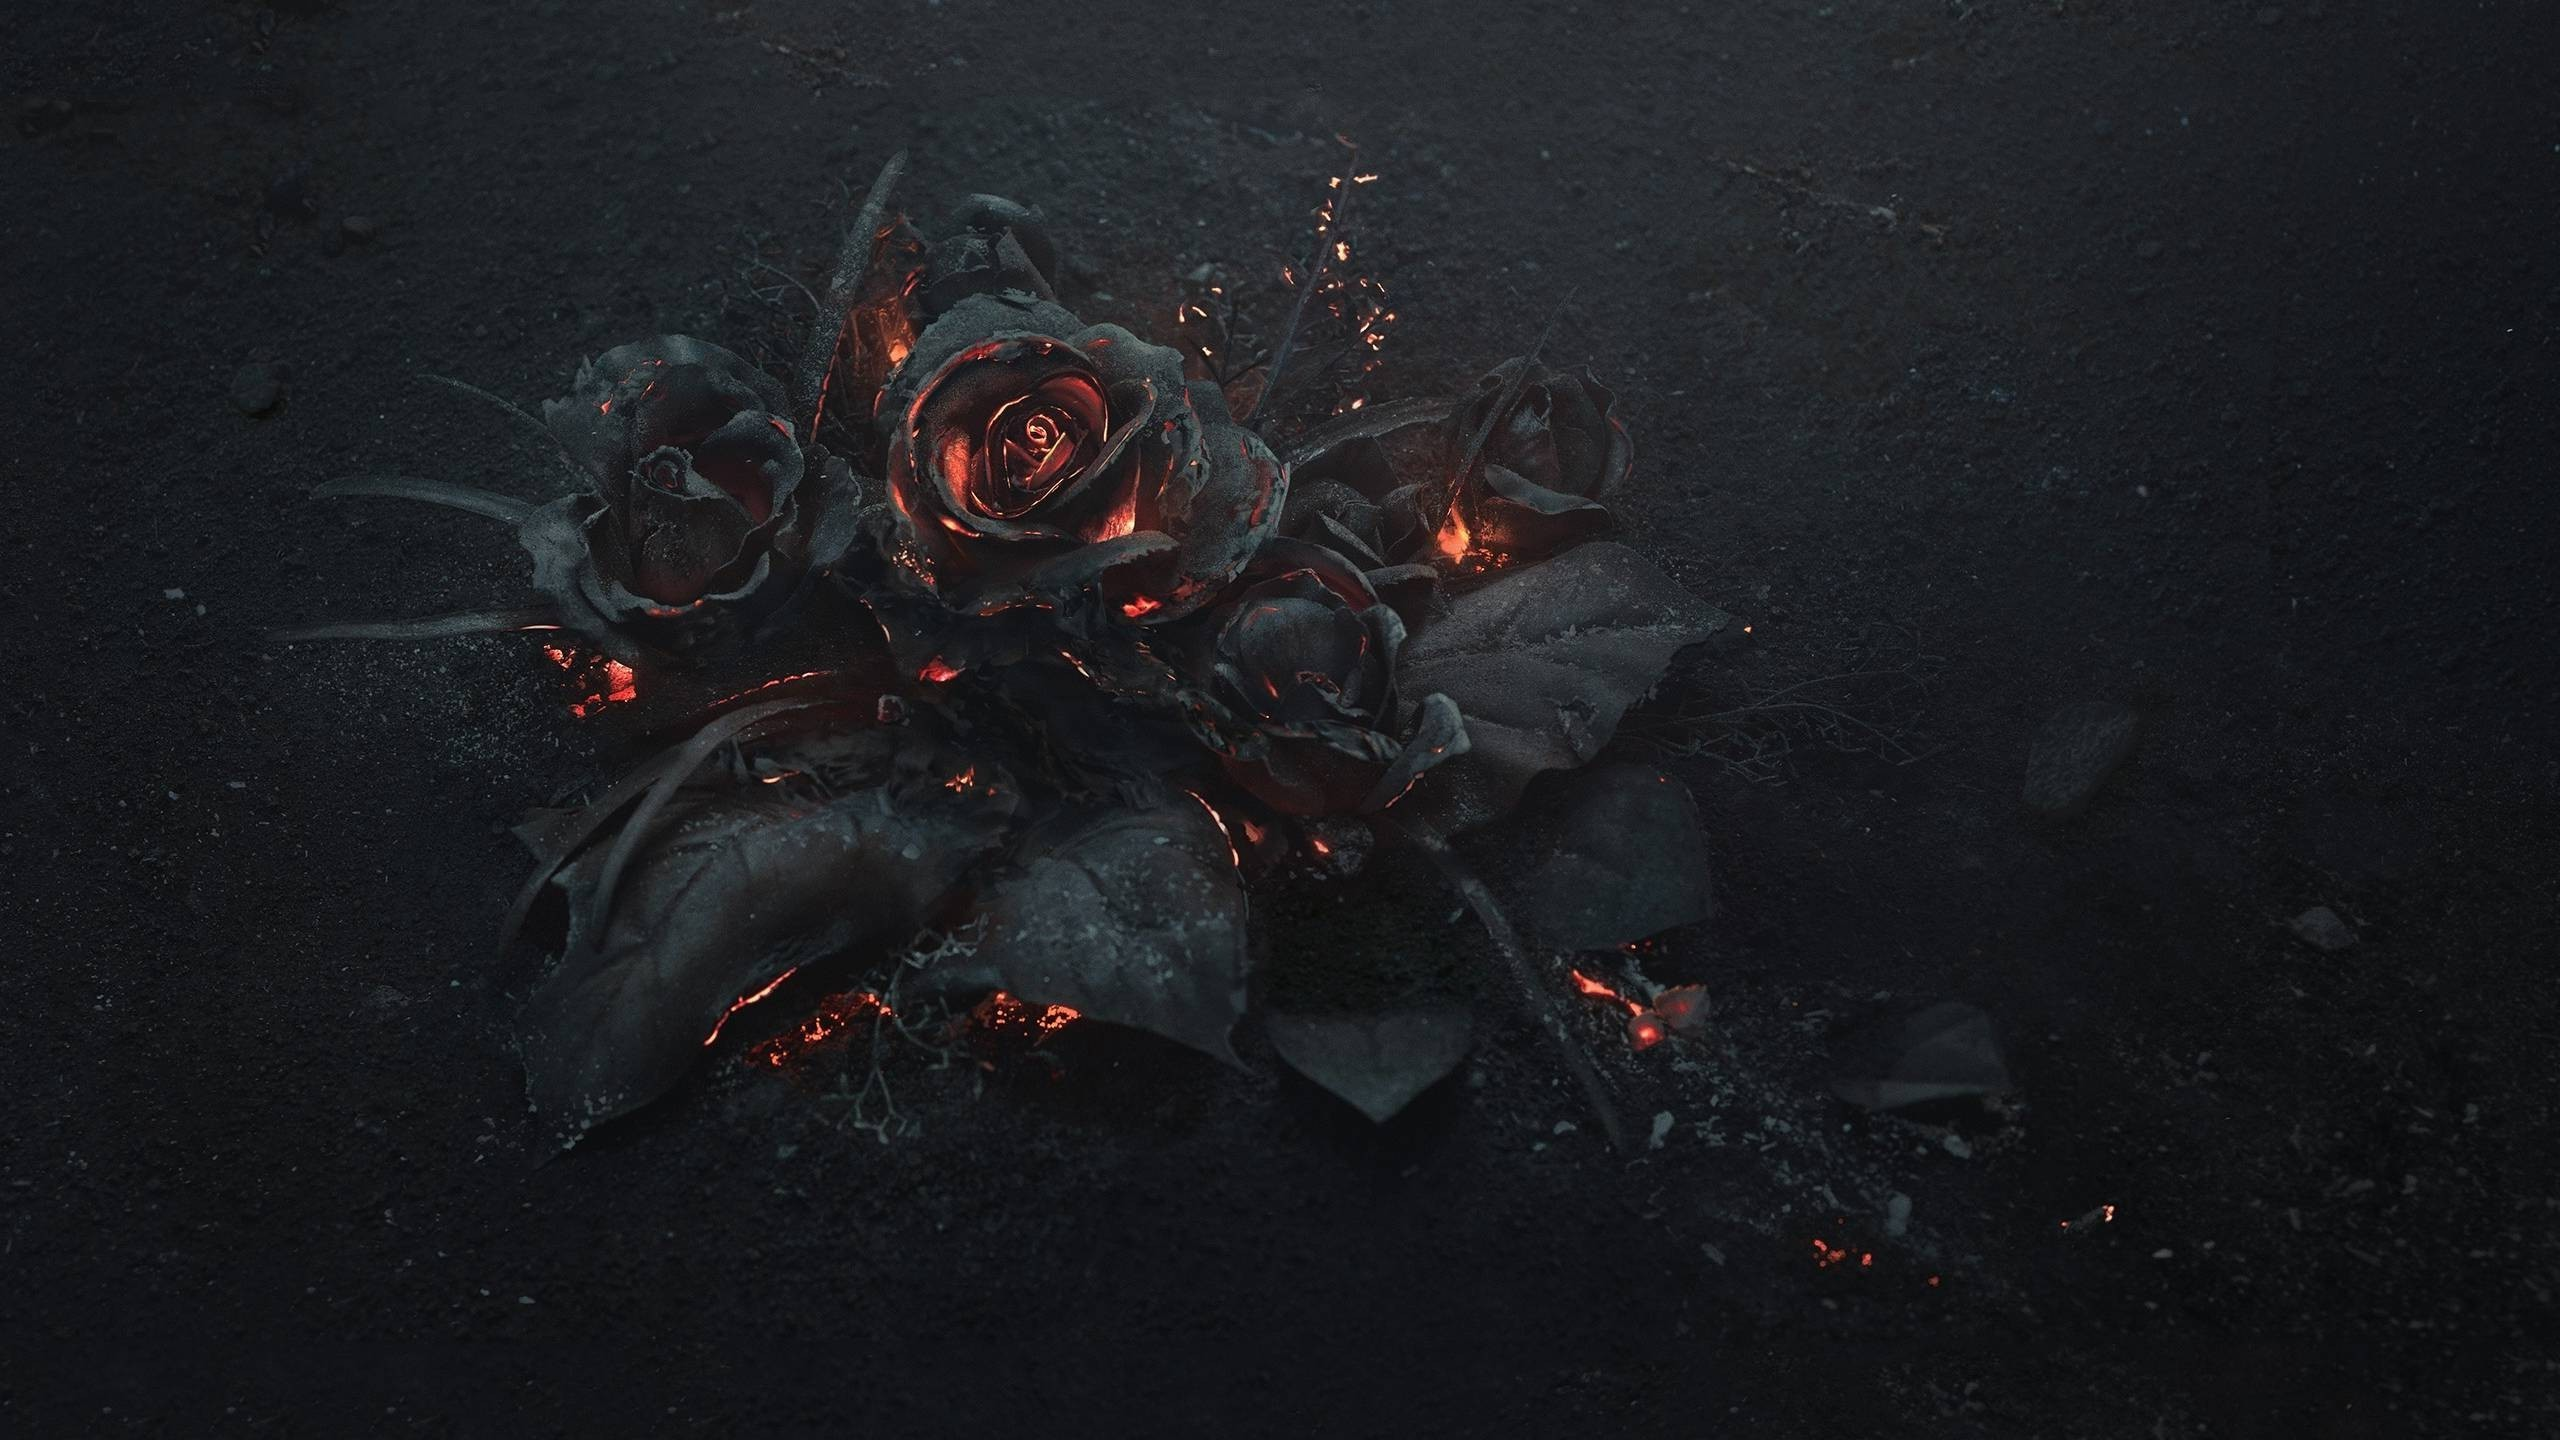 flowers, Rose, Fire, Gothic Wallpapers HD / Desktop and Mobile Backgrounds